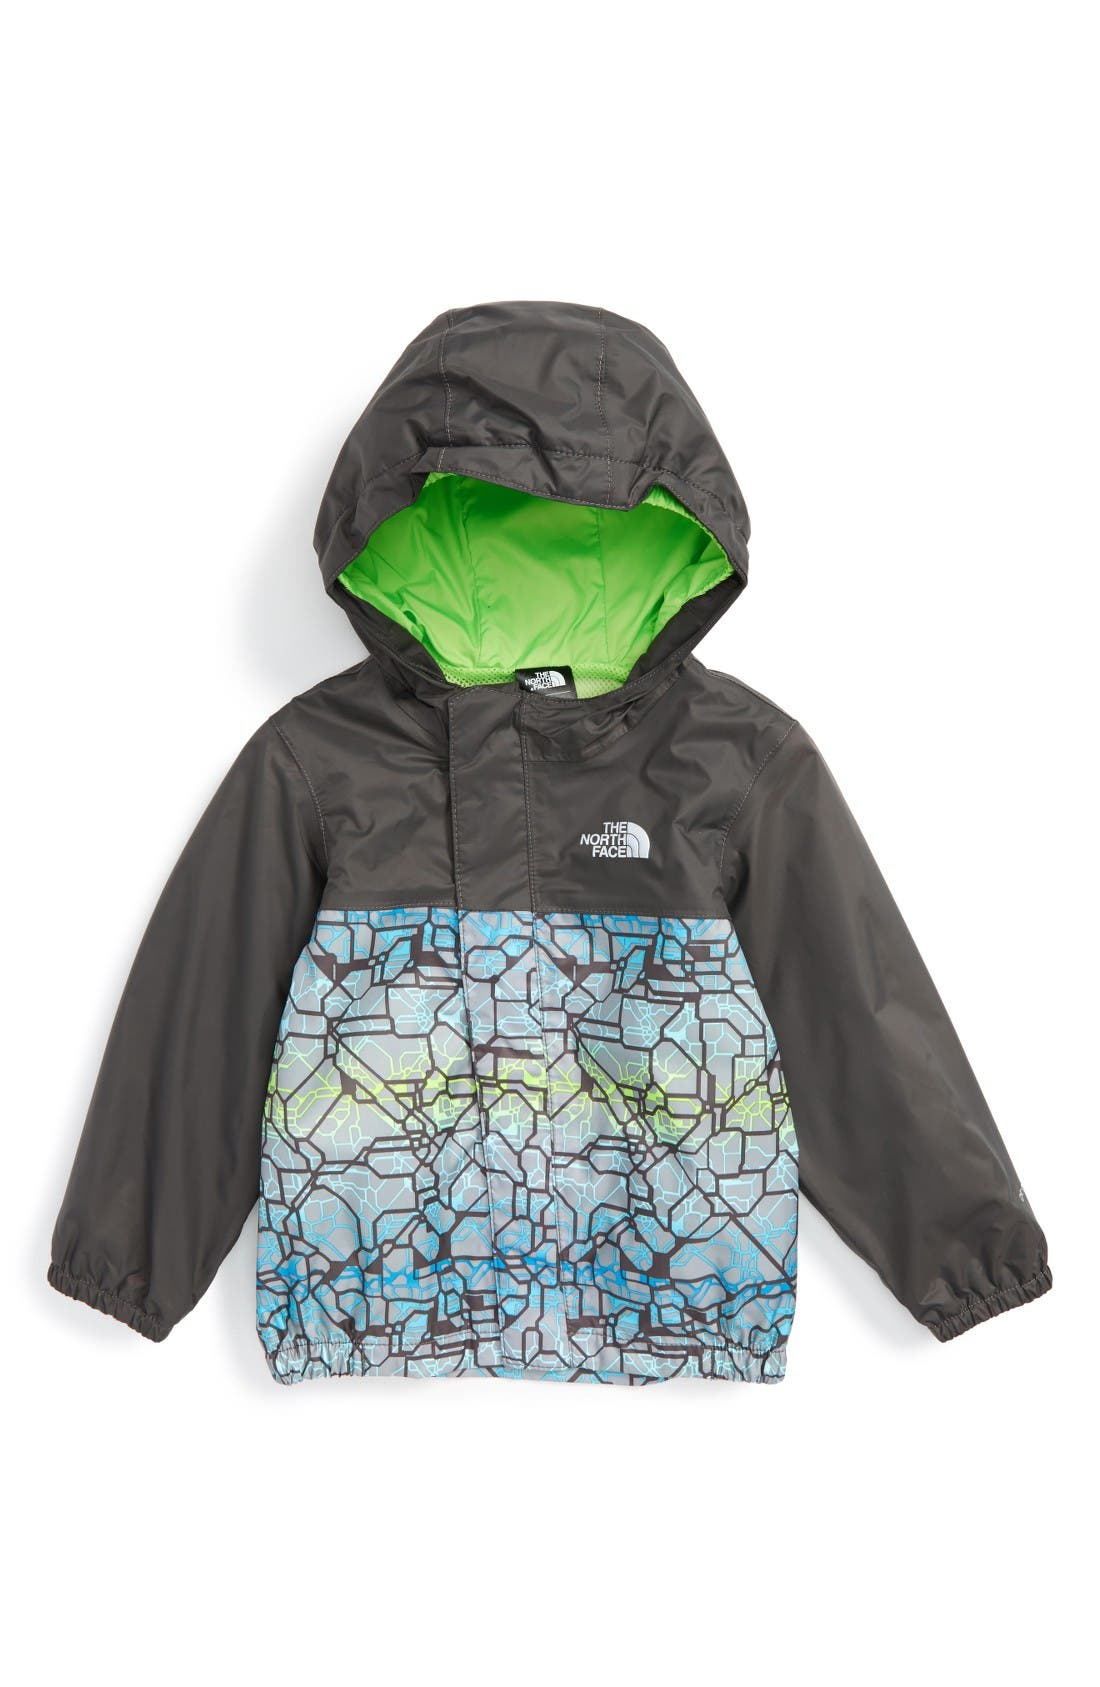 THE NORTH FACE 'Tailout' Hooded Rain Jacket